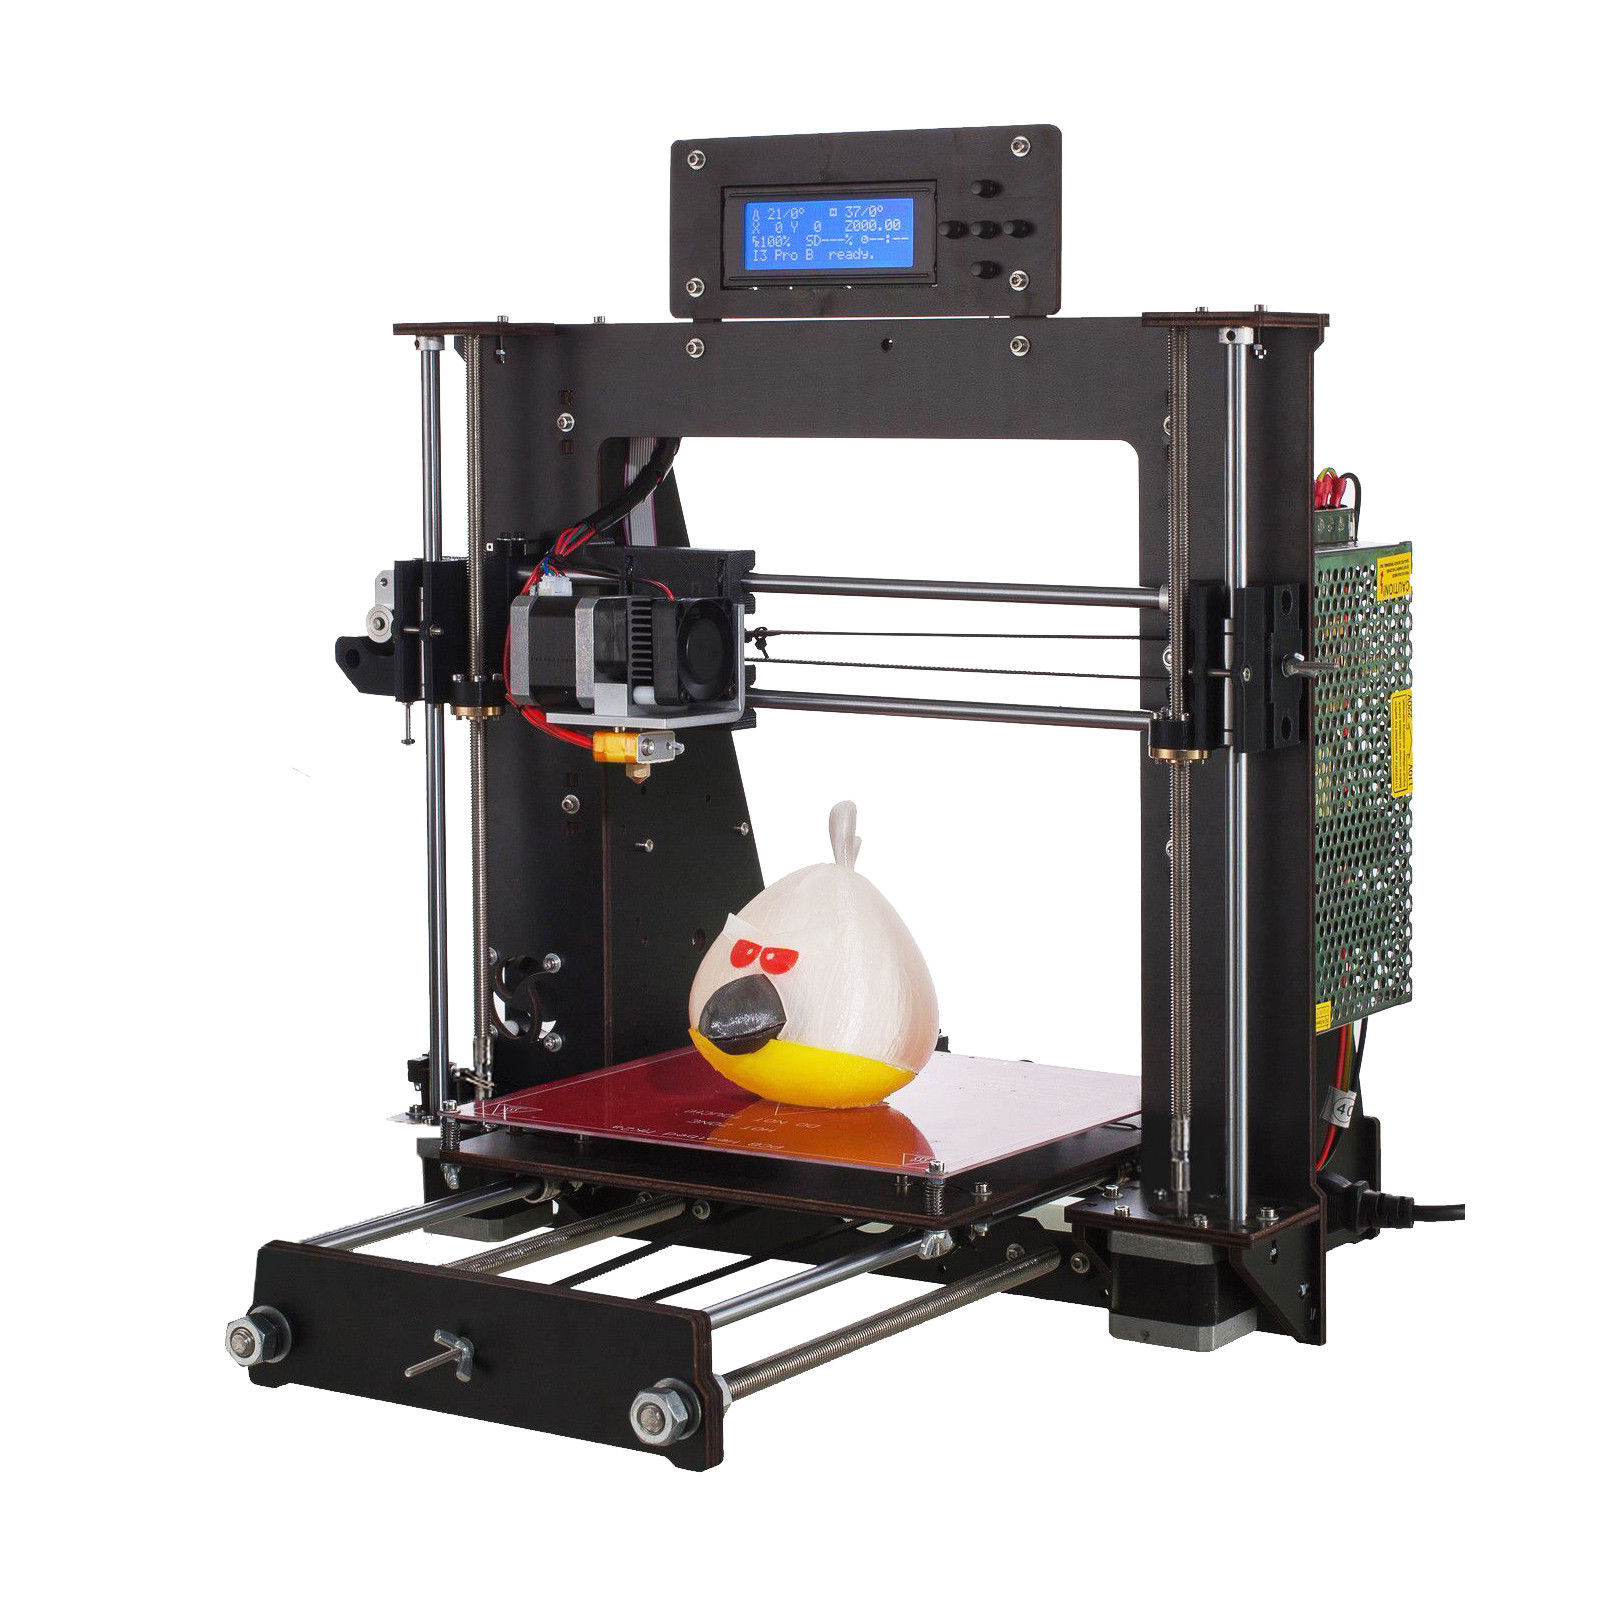 3D Printer with Power Failure Resume Printing and LCD Screen for High Precision Printing